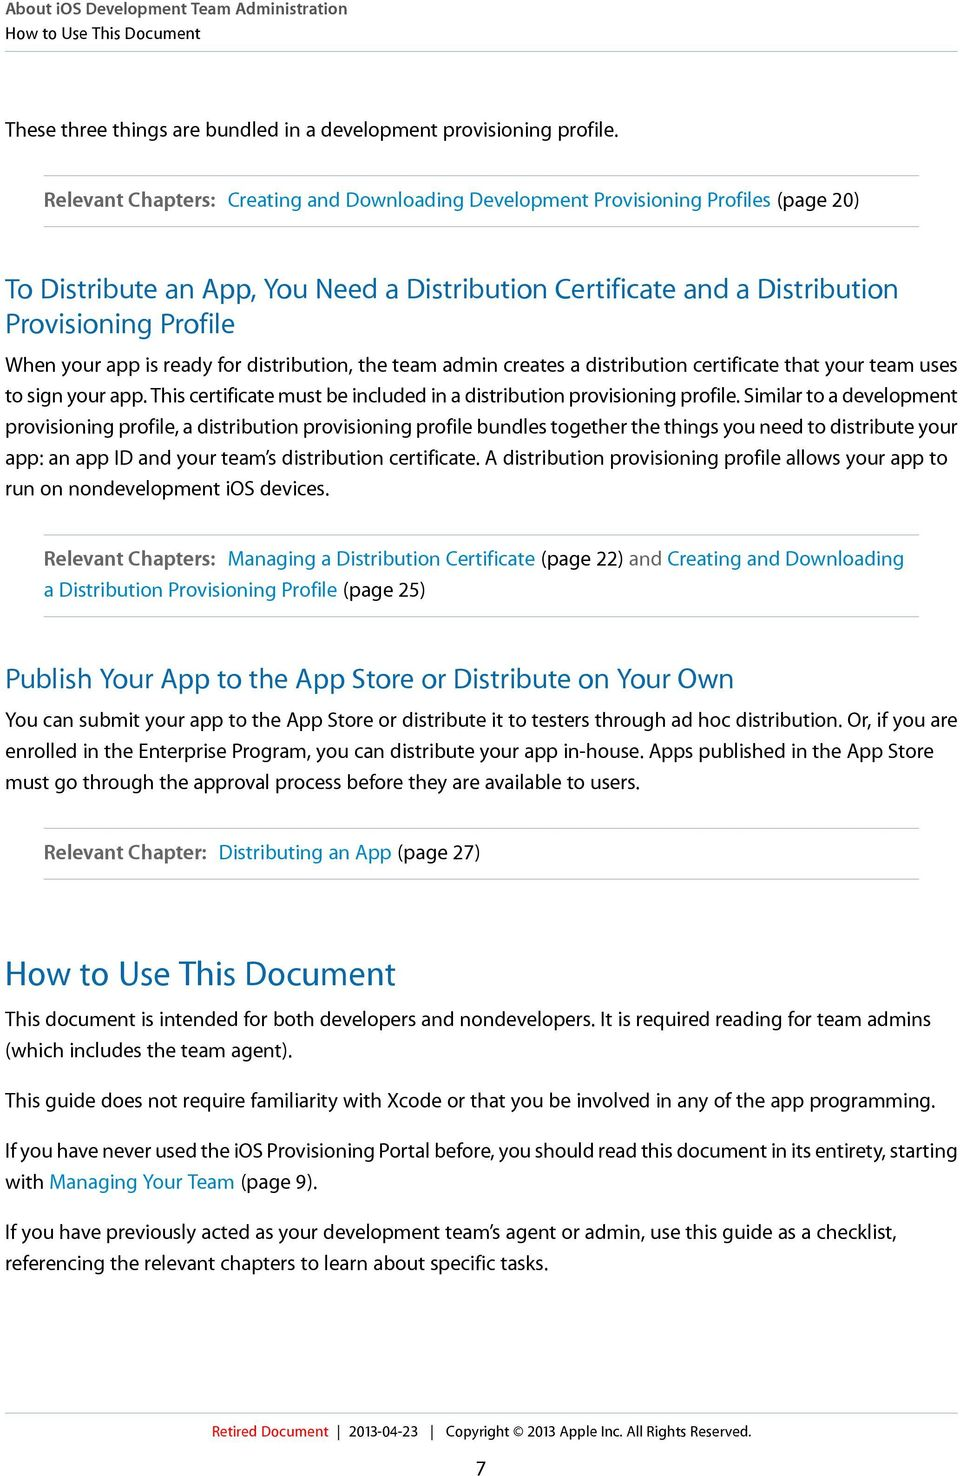 distribution, the team admin creates a distribution certificate that your team uses to sign your app. This certificate must be included in a distribution provisioning profile.